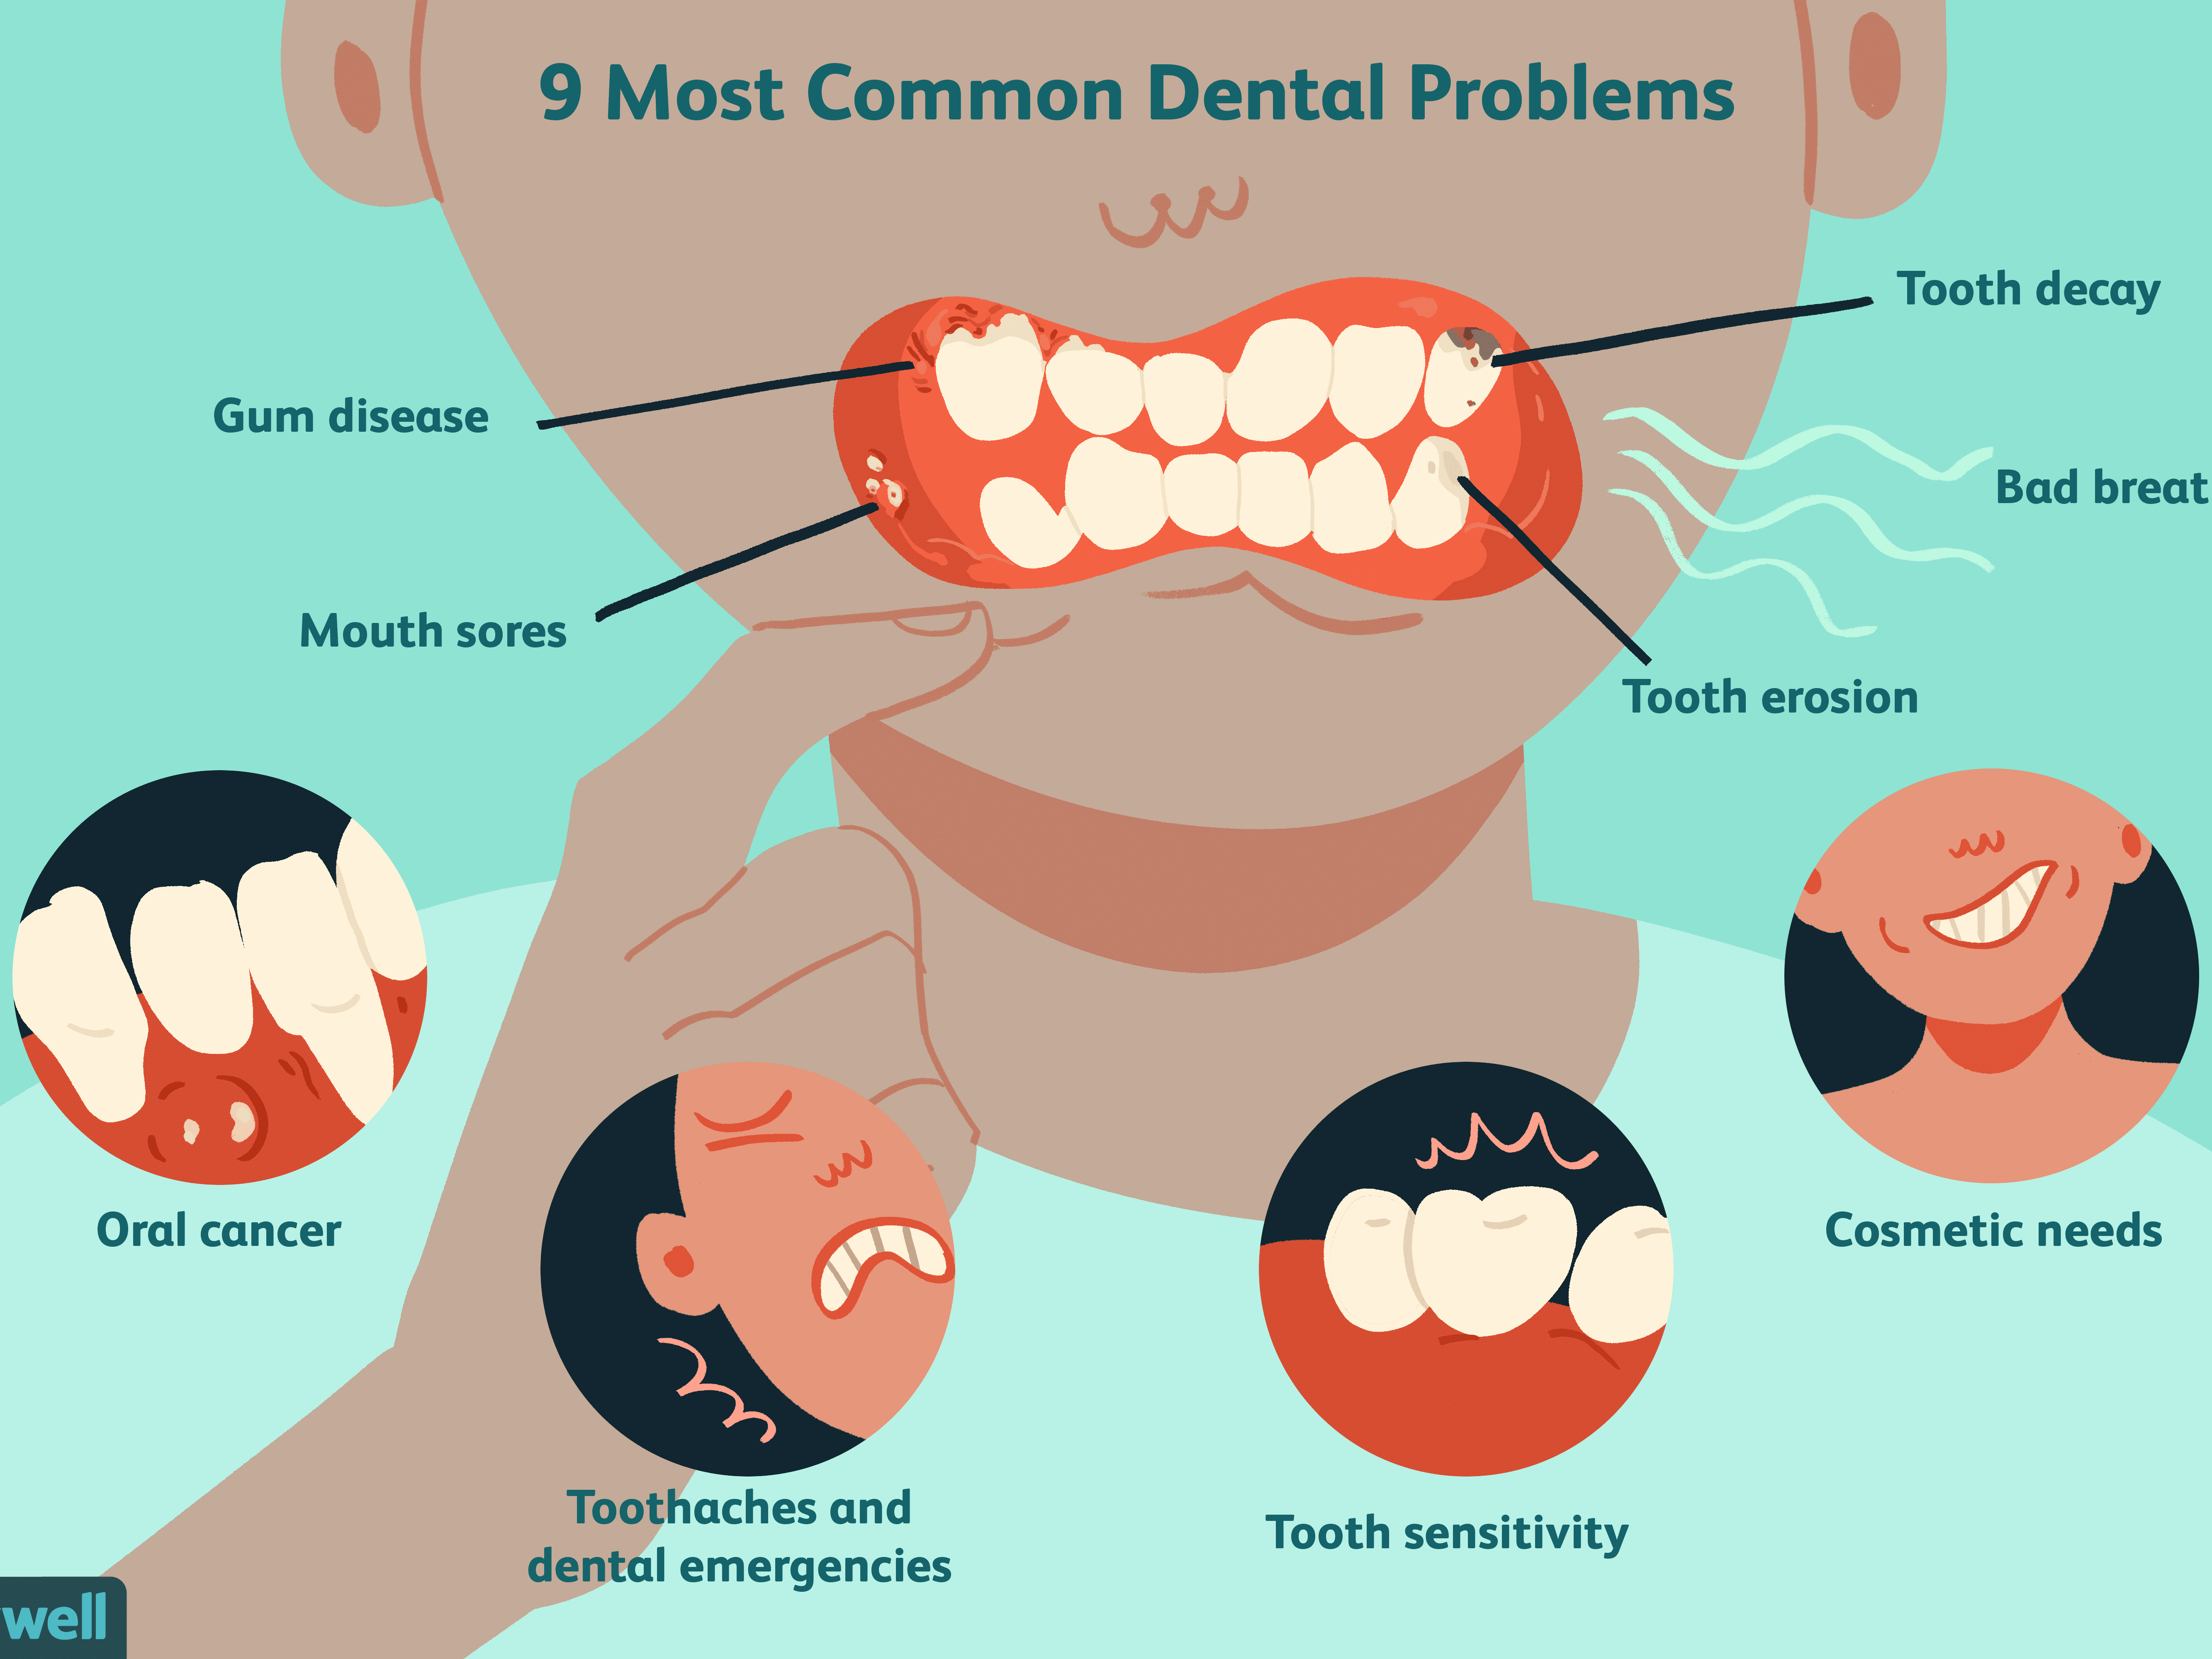 The 9 Most Common Dental Problems